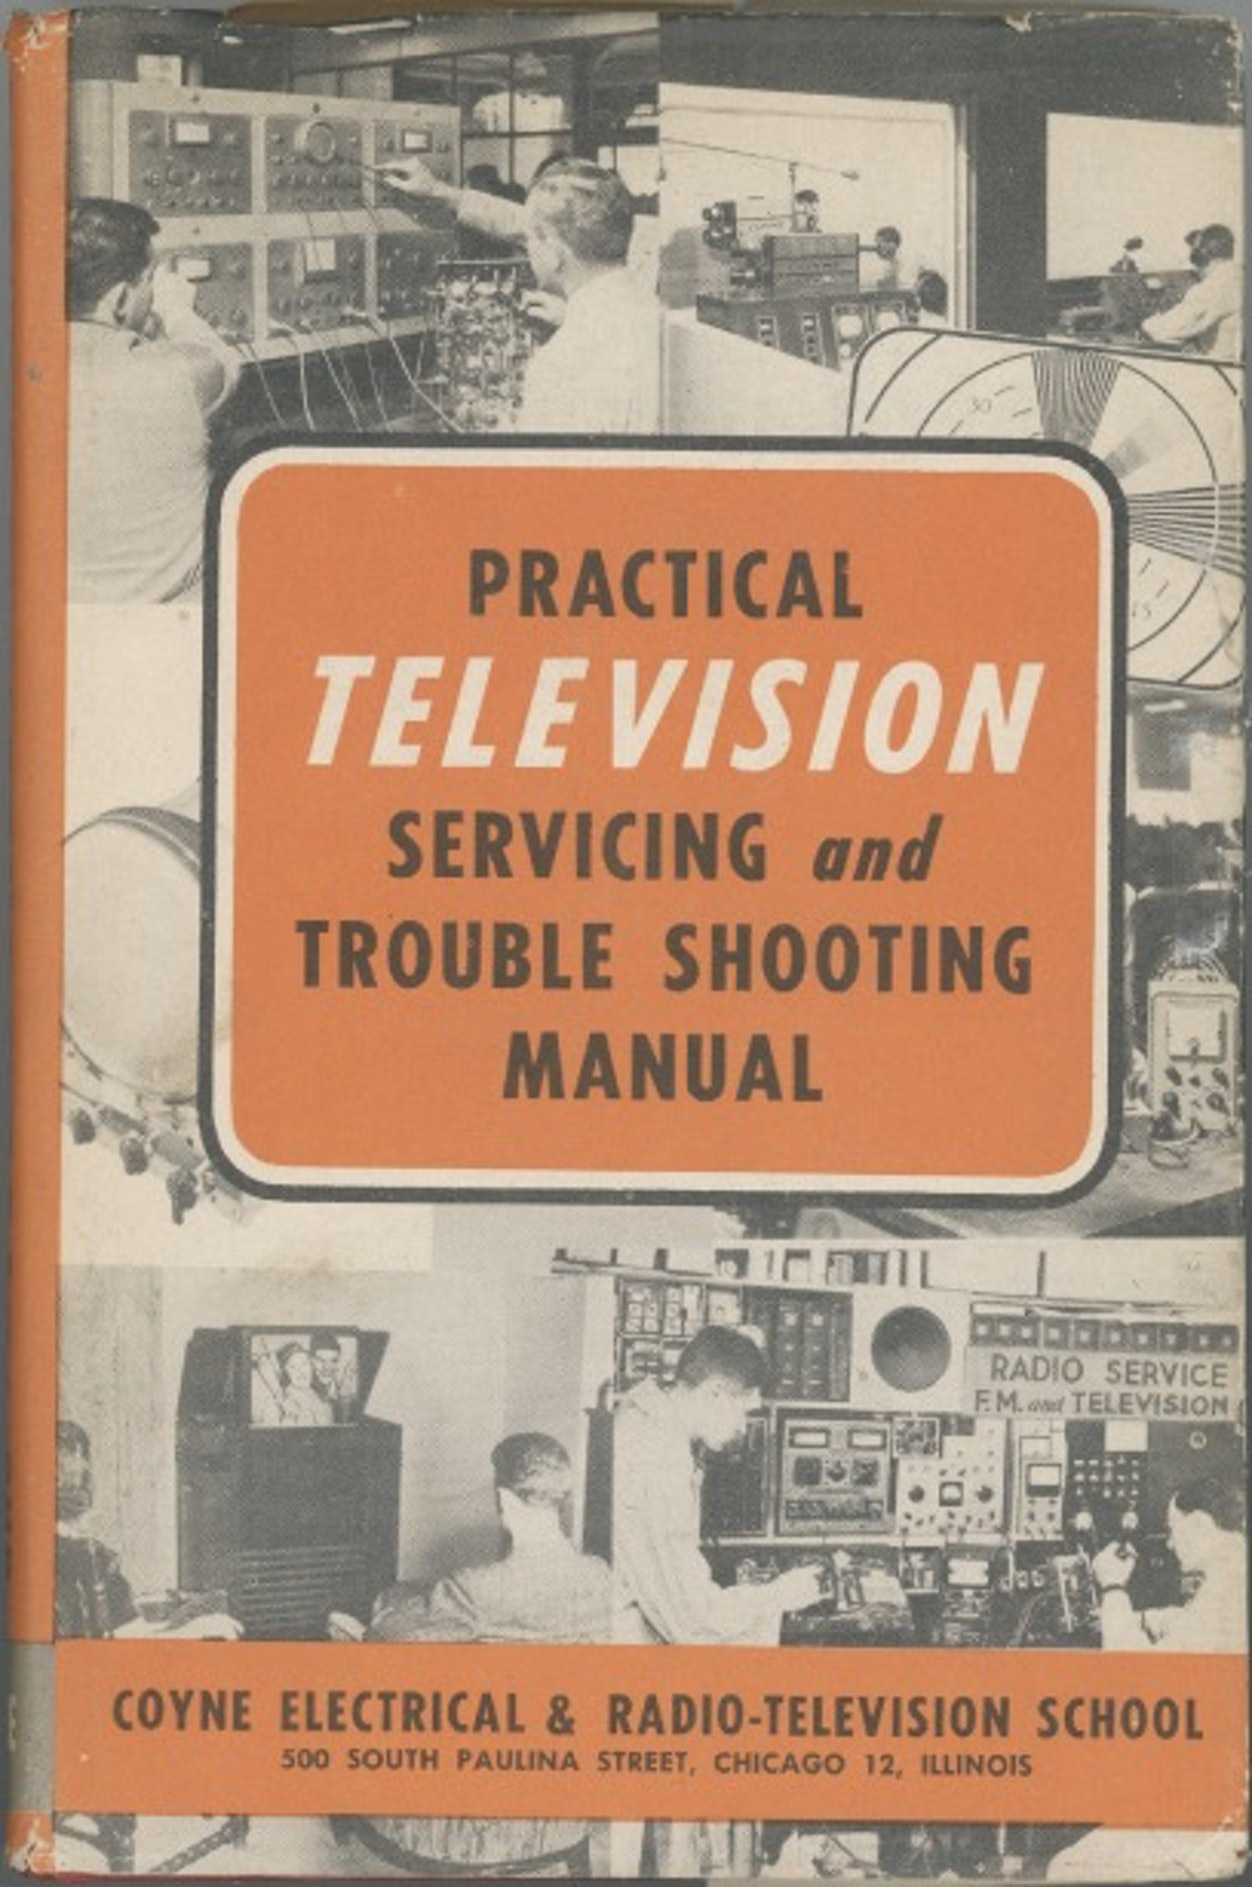 Practical Television Servicing and Trouble Shooting Manual